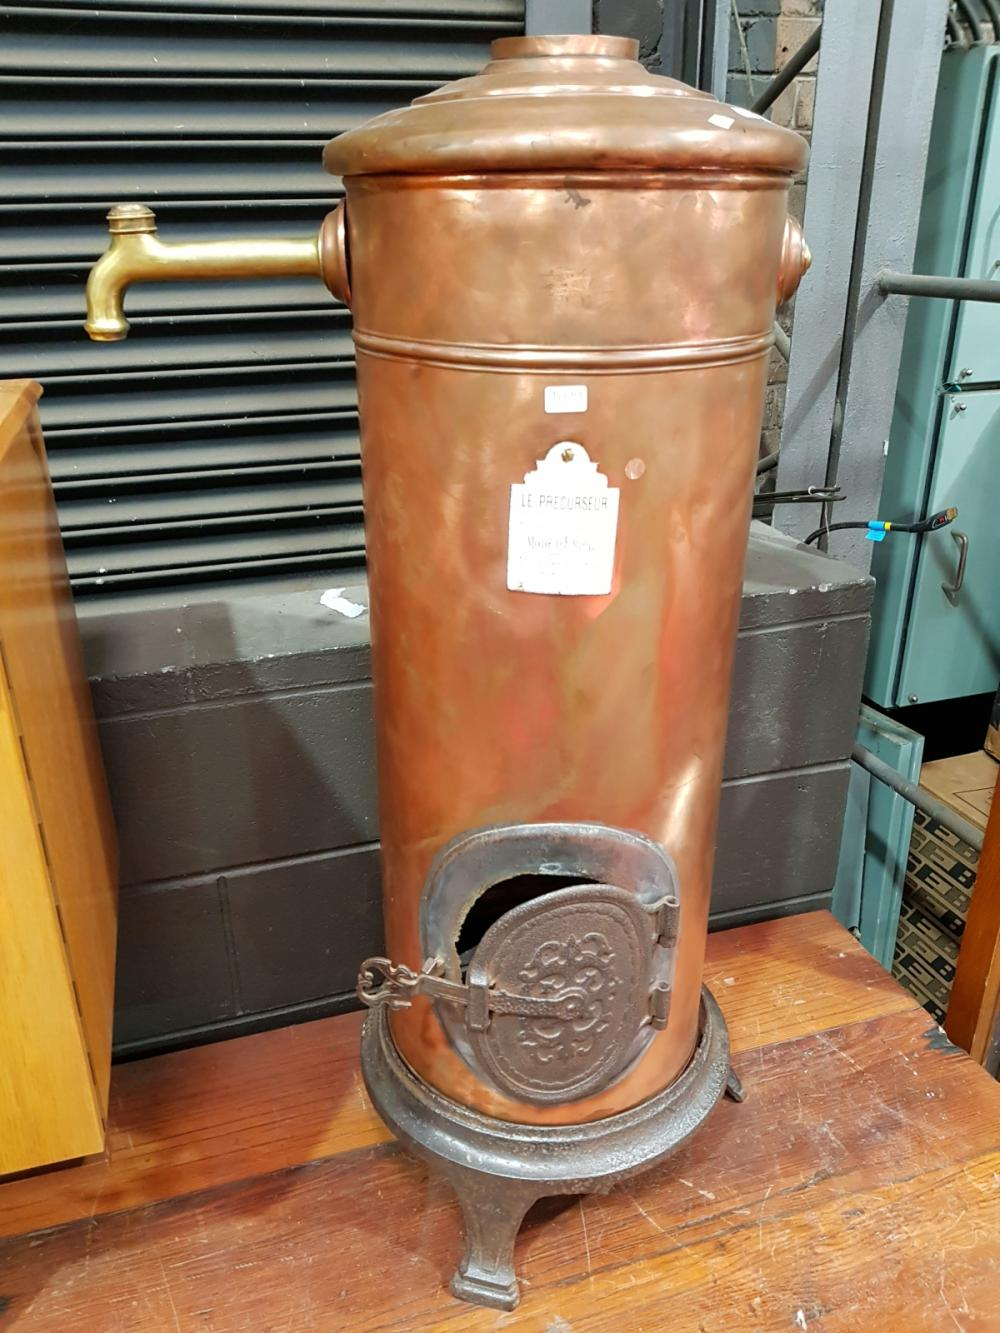 Vintage Le Precurseur Copper and Brass Hot Water Heater